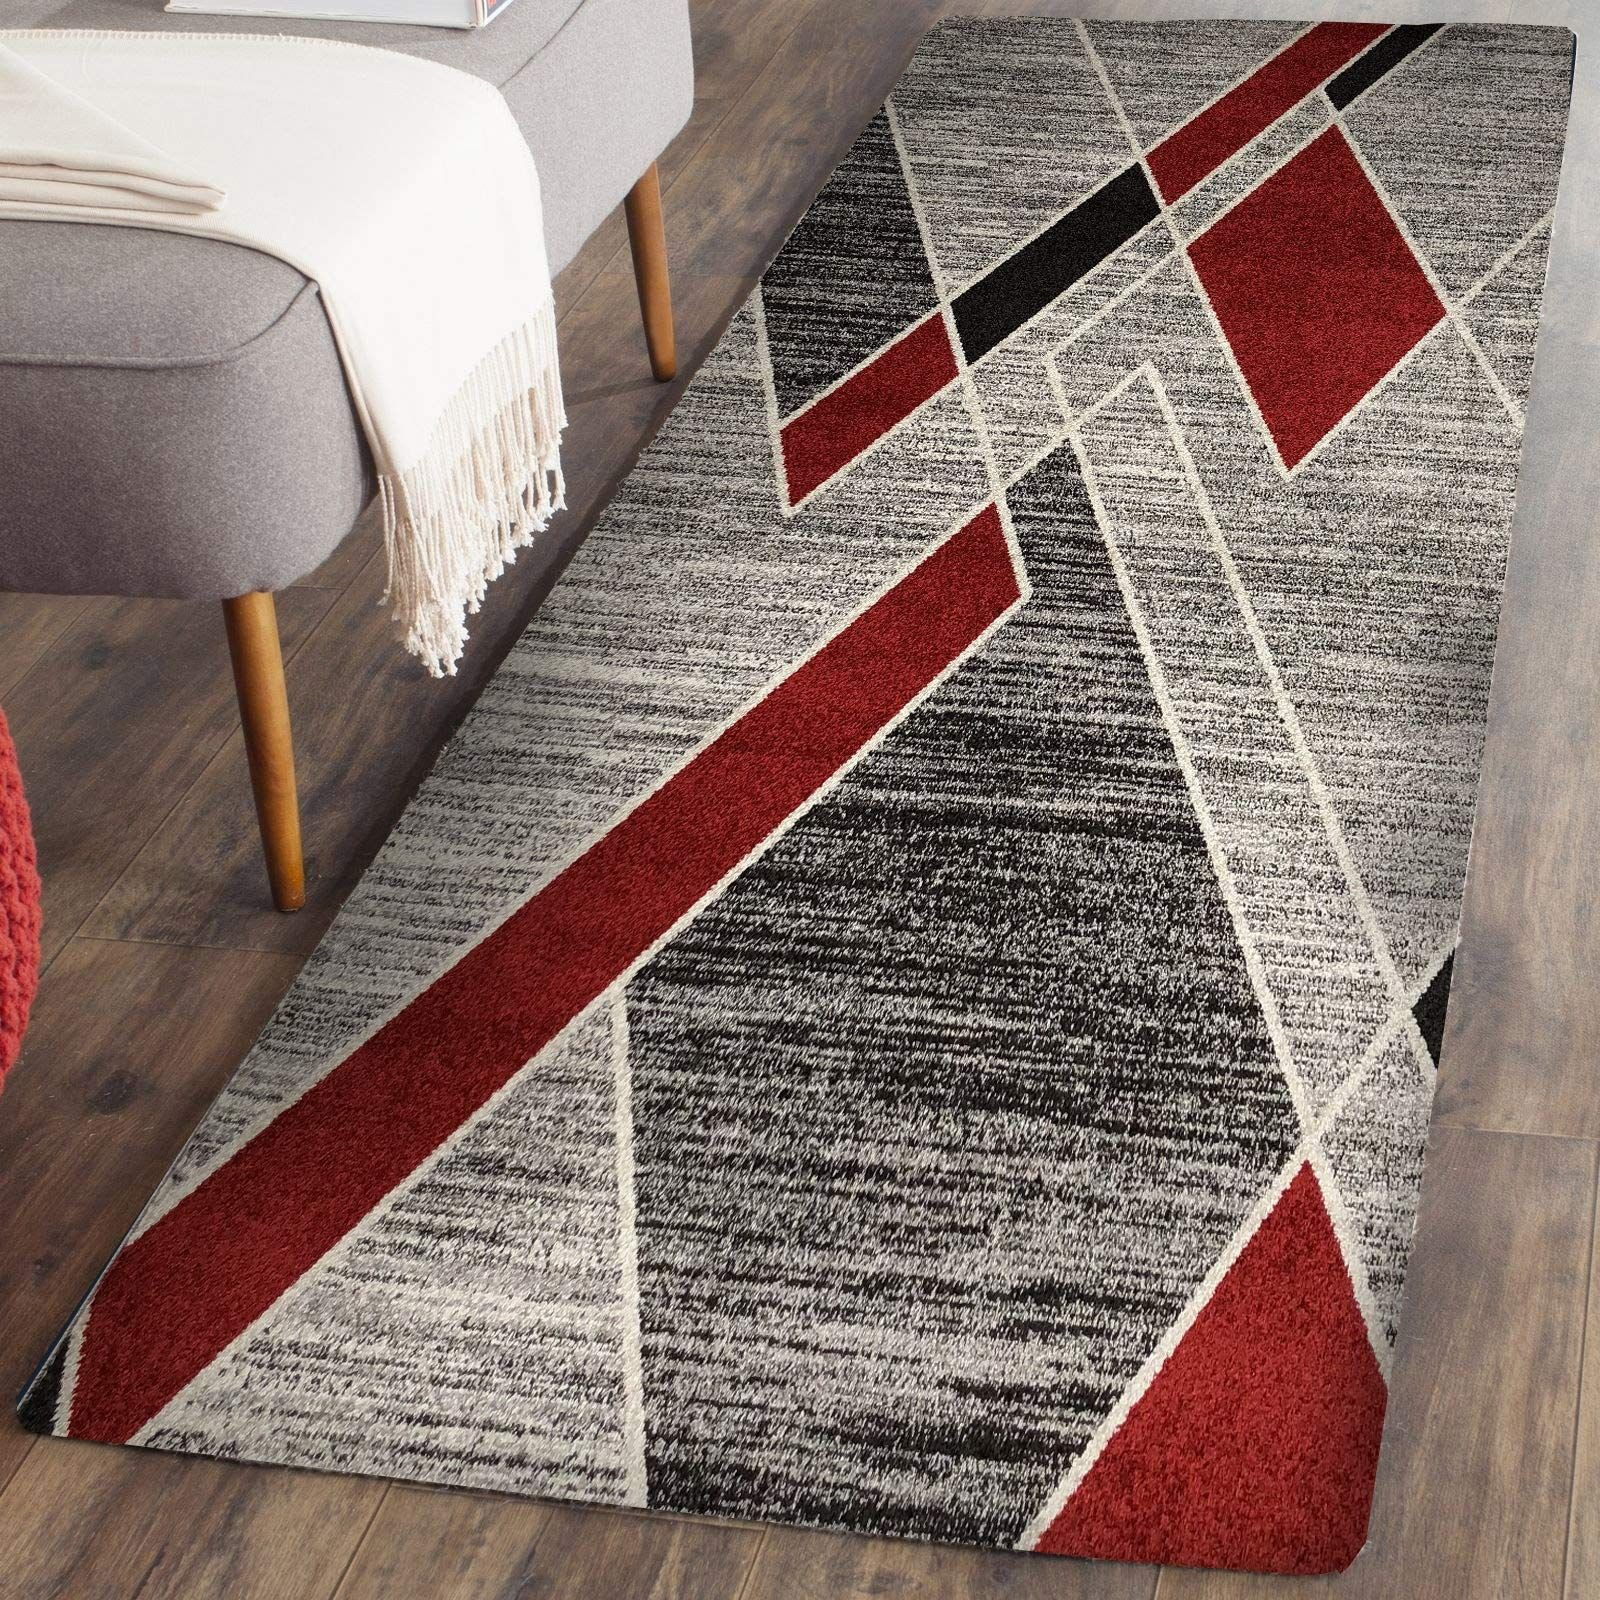 Black Rugs for Bedroom Luxury Prestige Decor area Rugs 2x5 Living Room Rug Carpet Grey Red